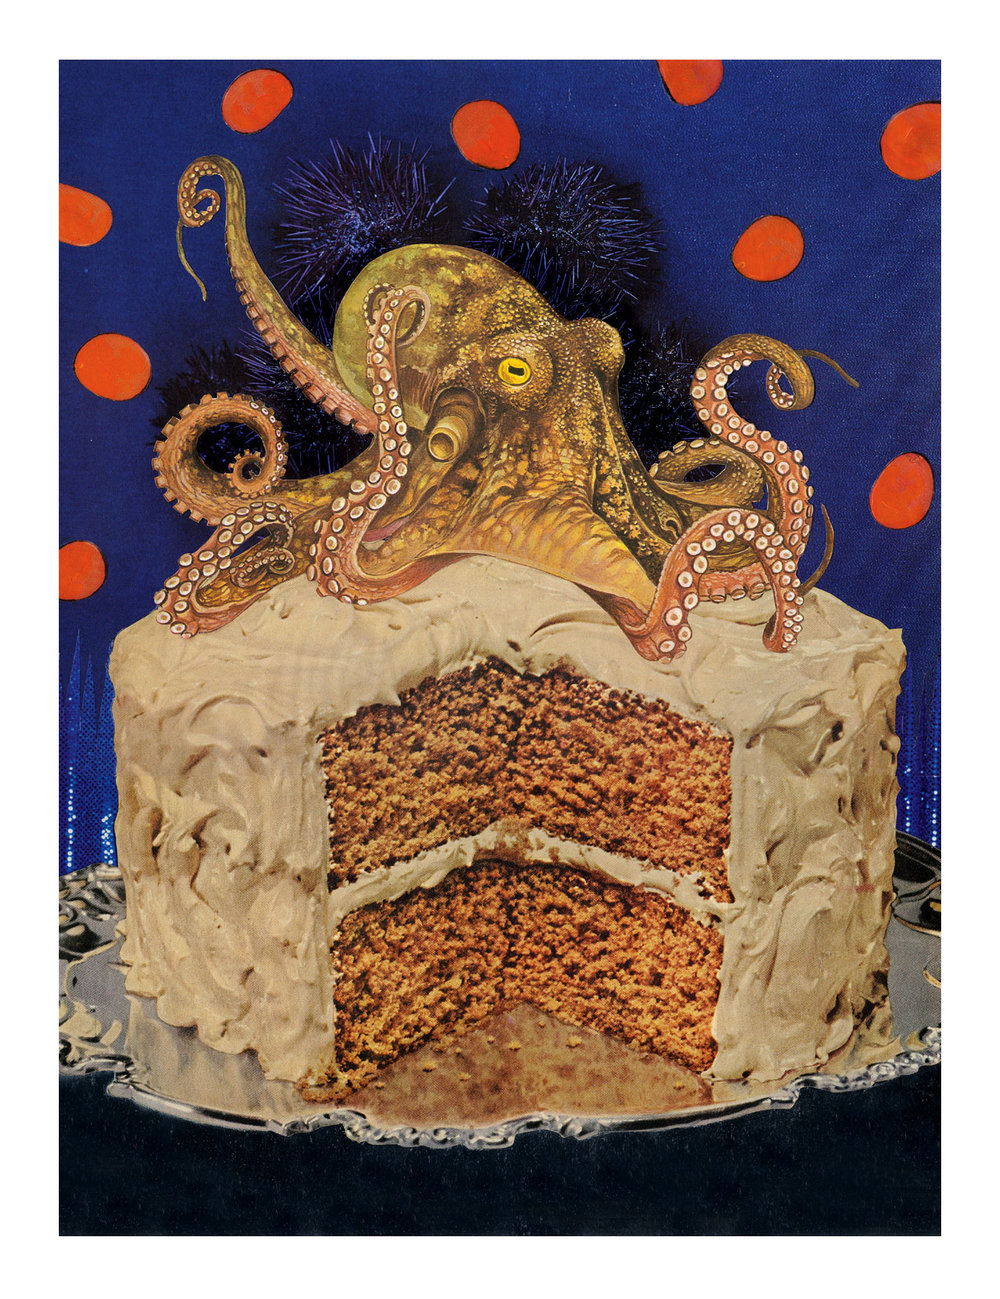 card-Octopus-Cakew.jpg